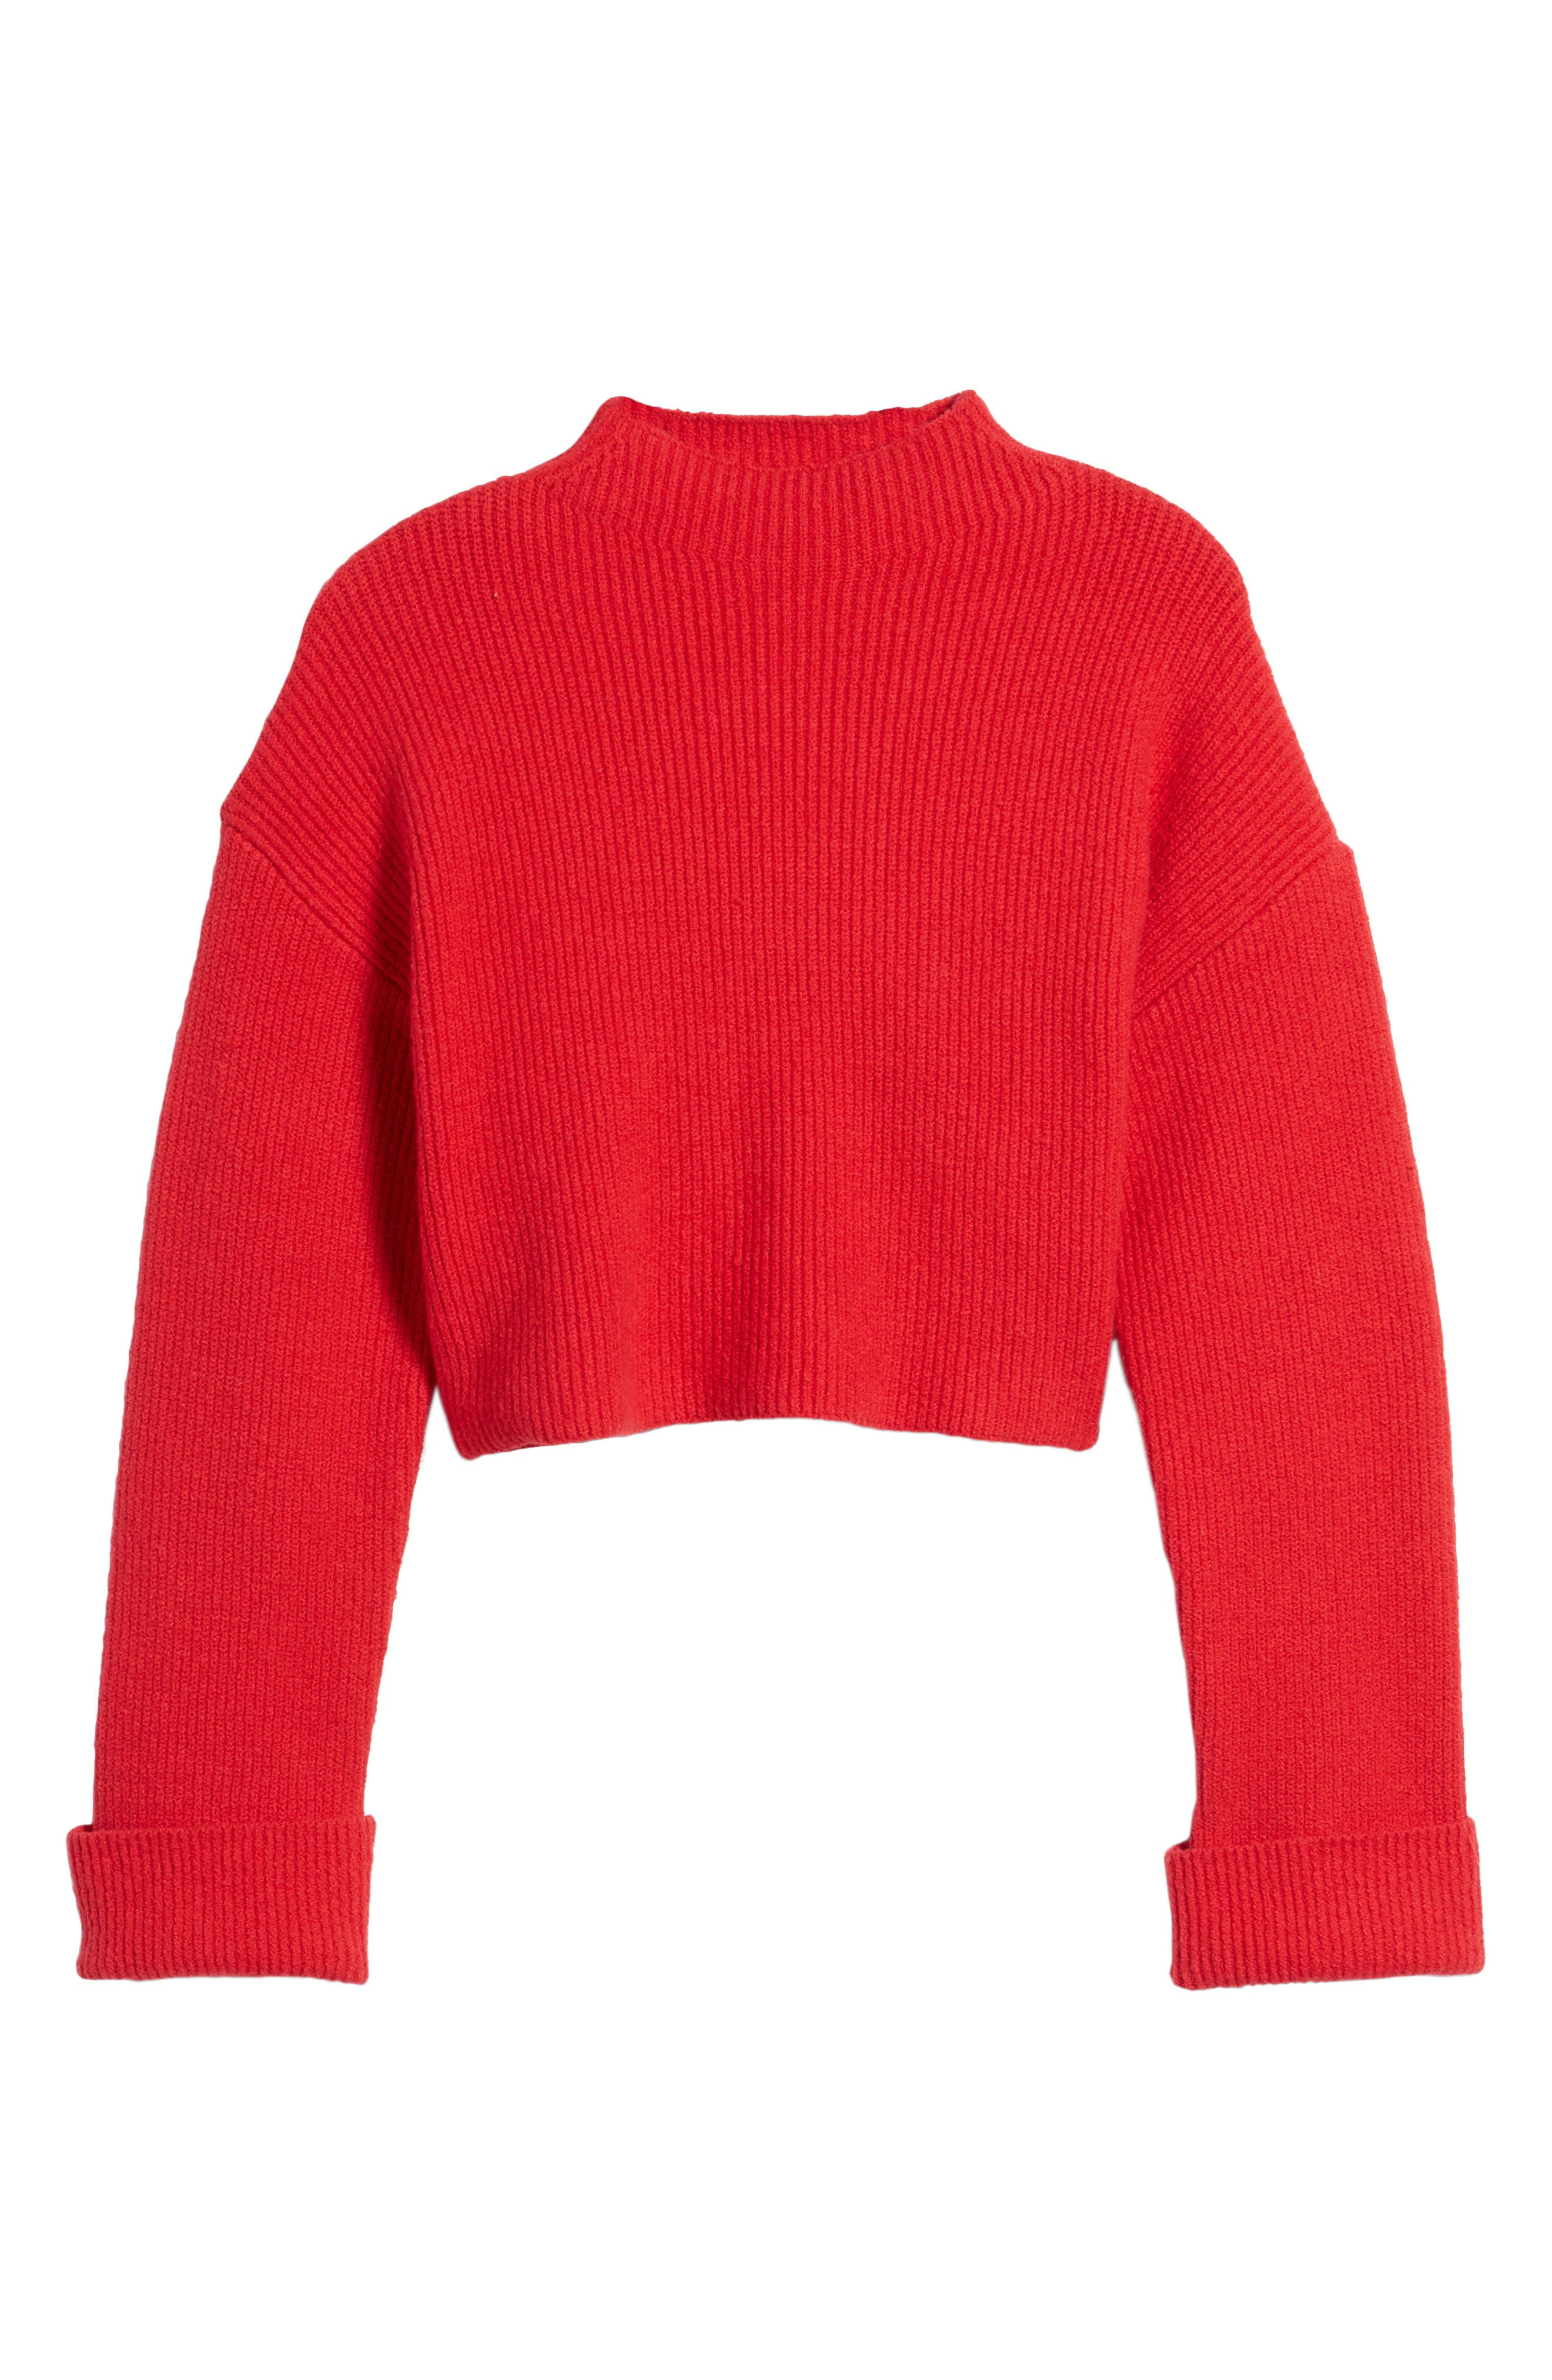 Wide Cuff Mock Neck Sweater,                             Alternate thumbnail 6, color,                             Patriot Red